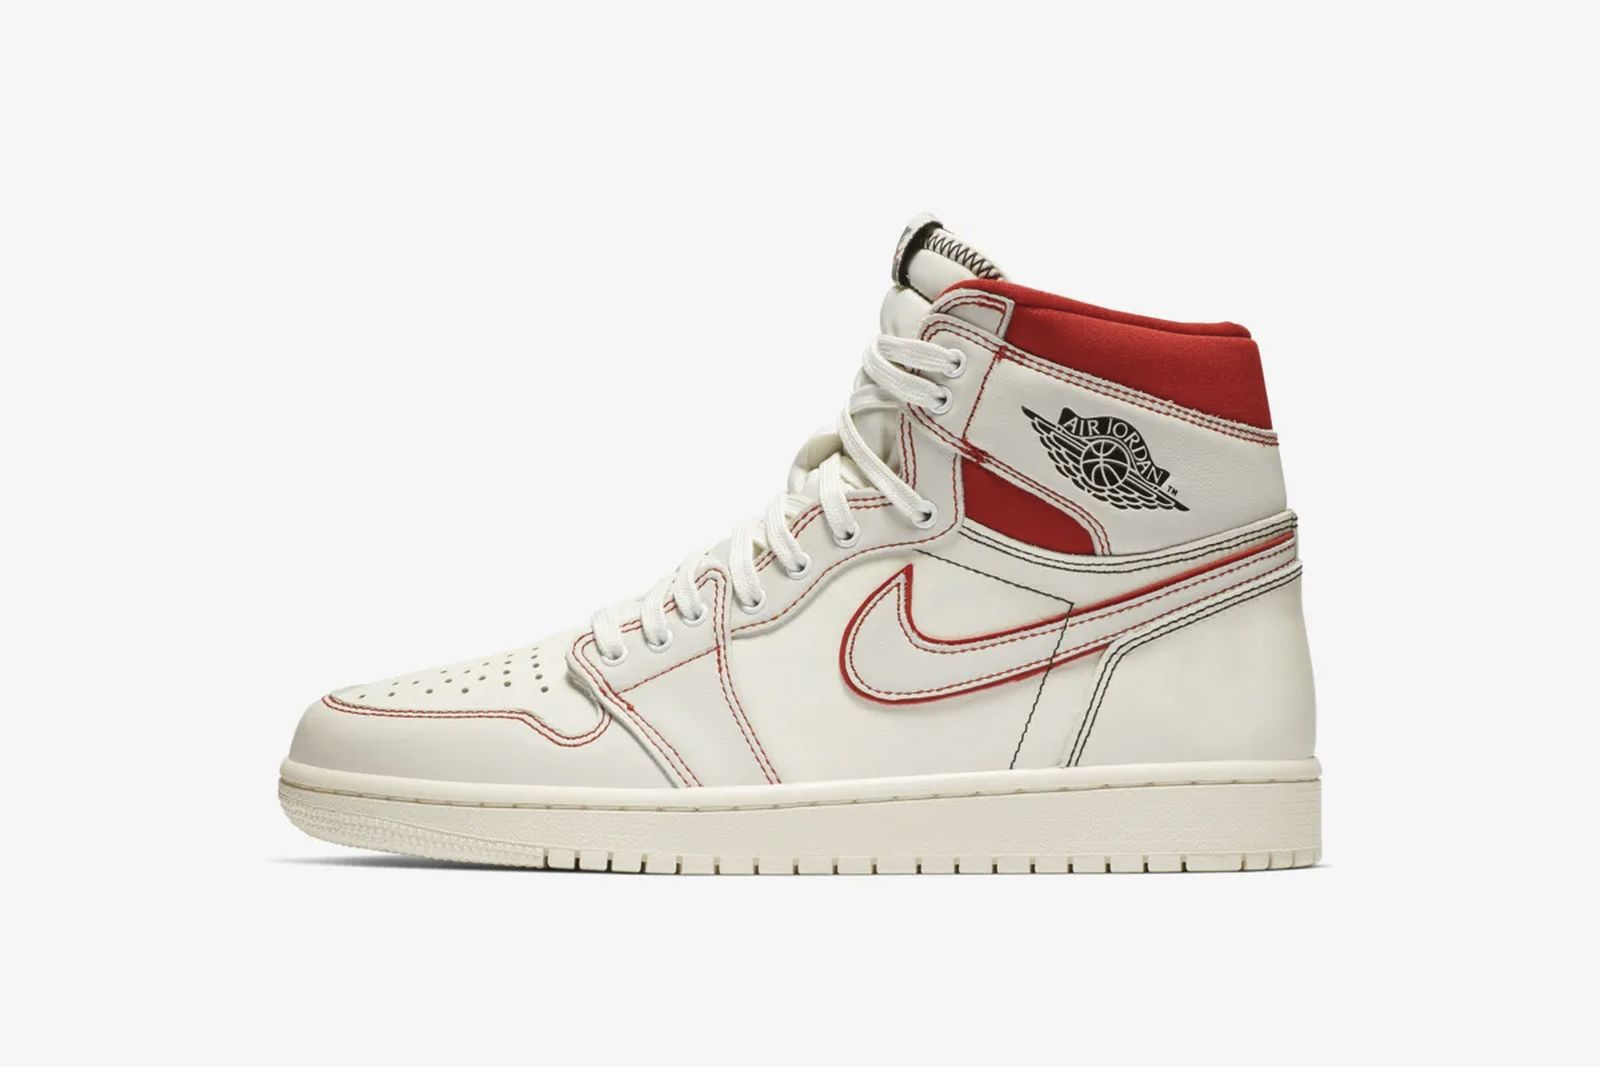 nike air jordan 1 sail university red release date price StockX jordan brand